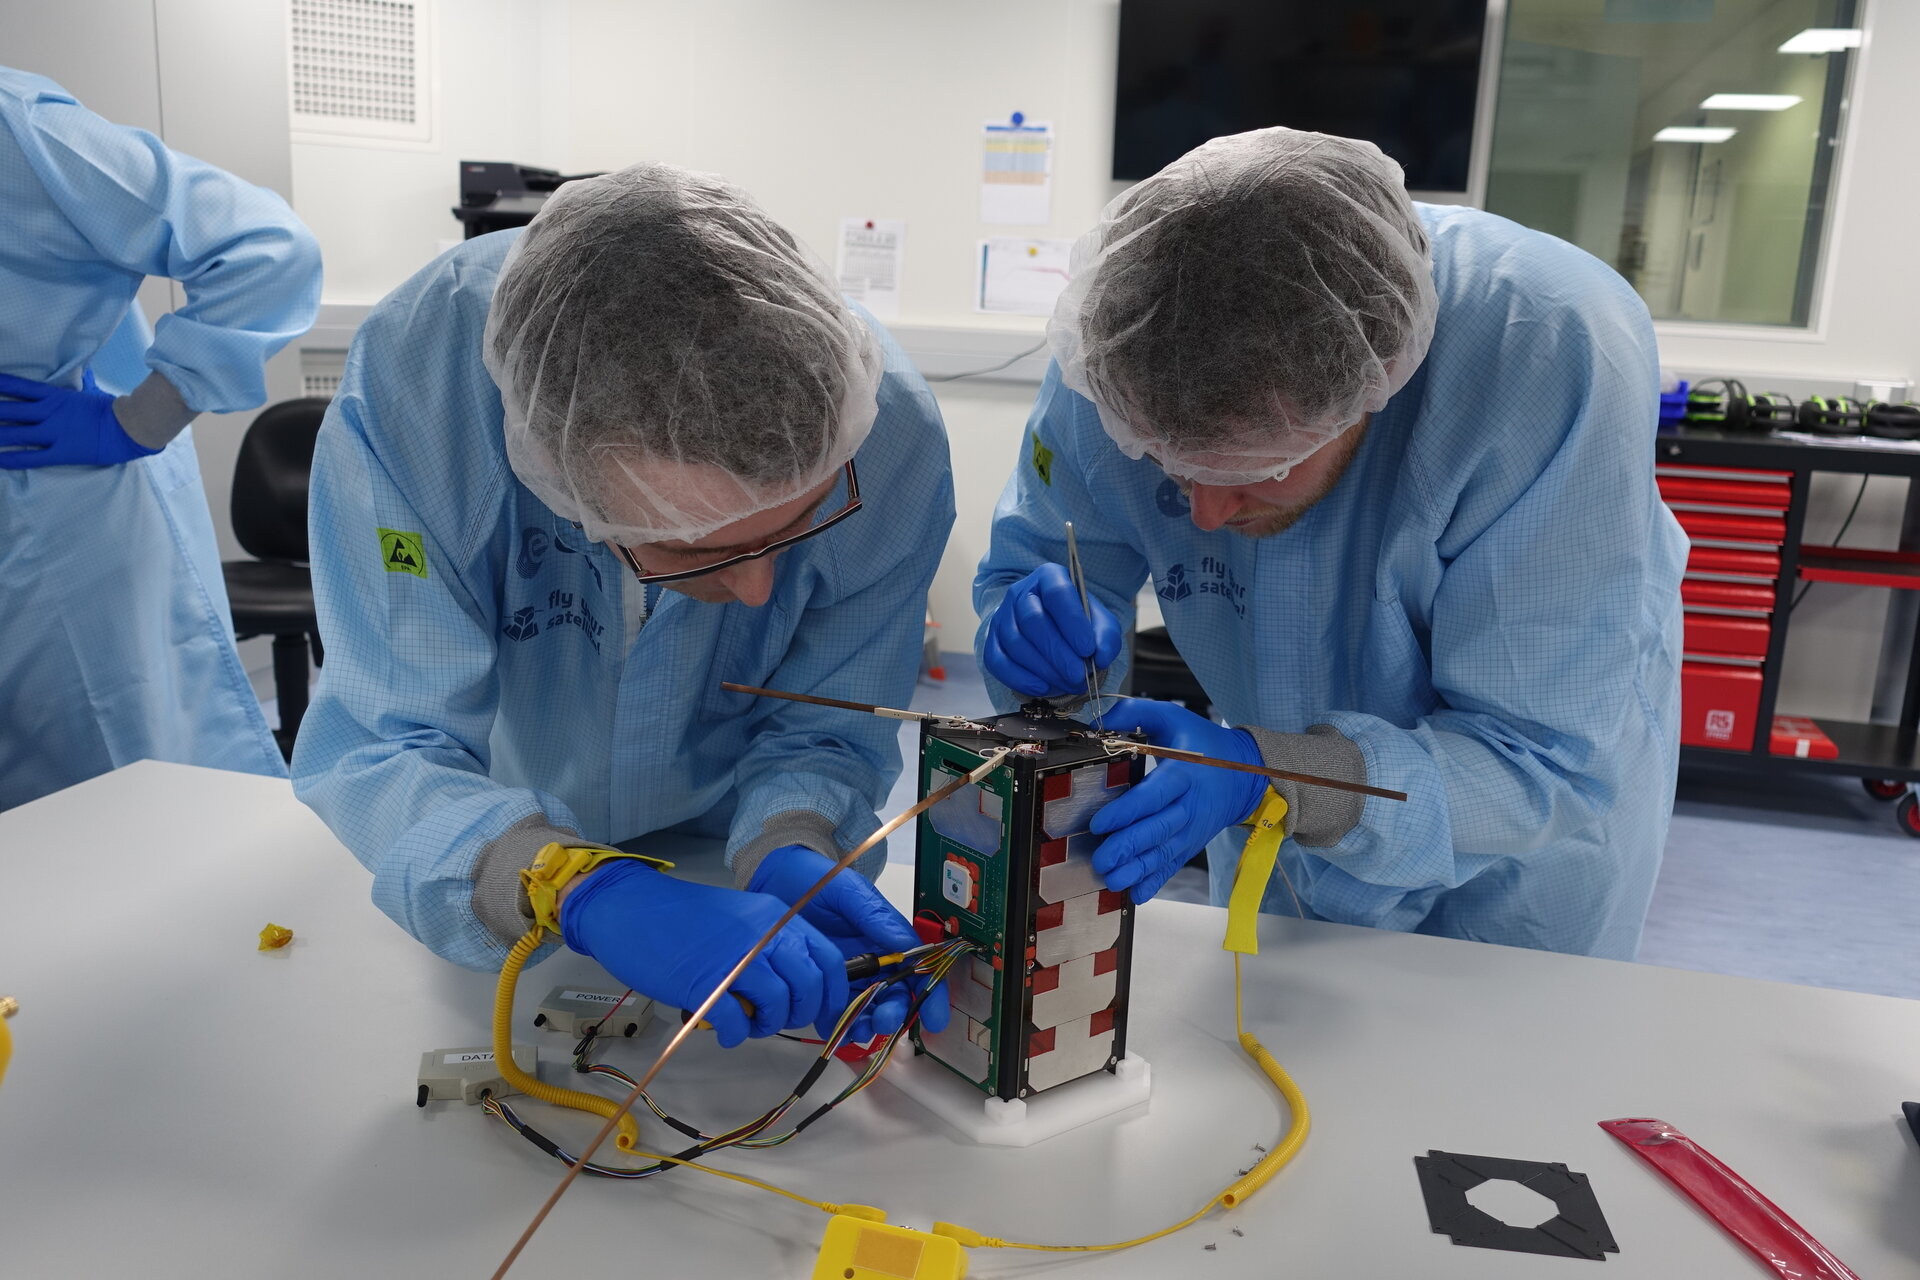 Inspections and checks performed on the EIRSAT-1 CubeSat